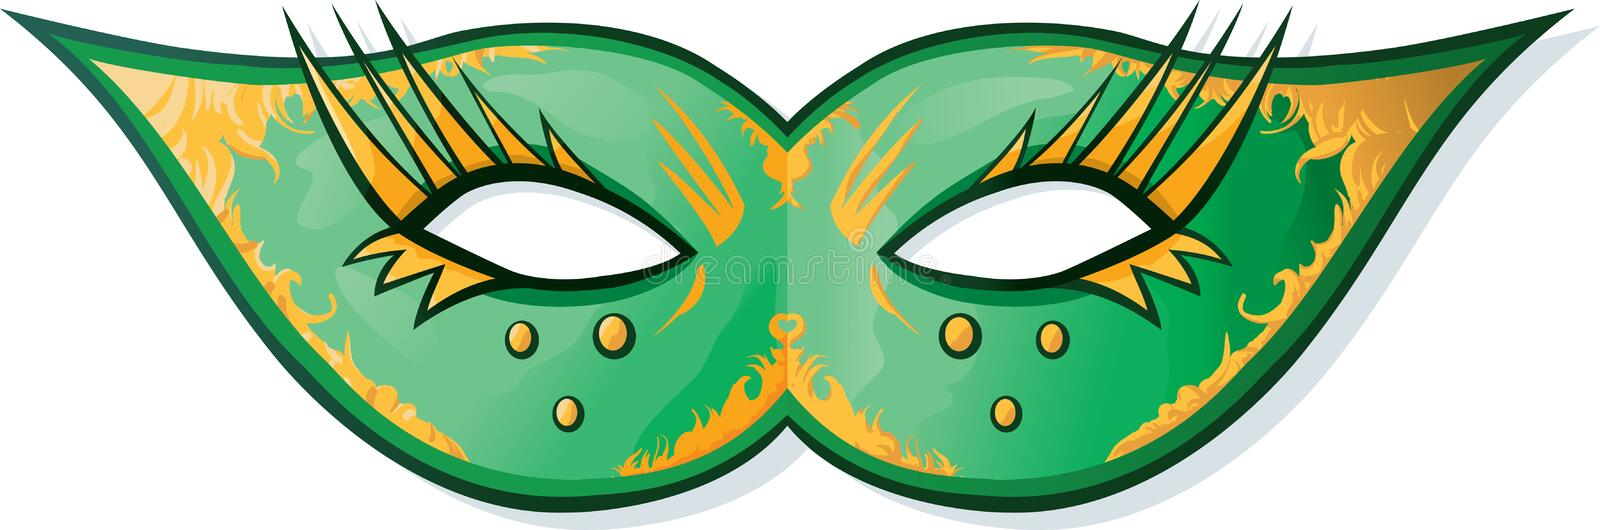 Masque de mardi gras illustration stock